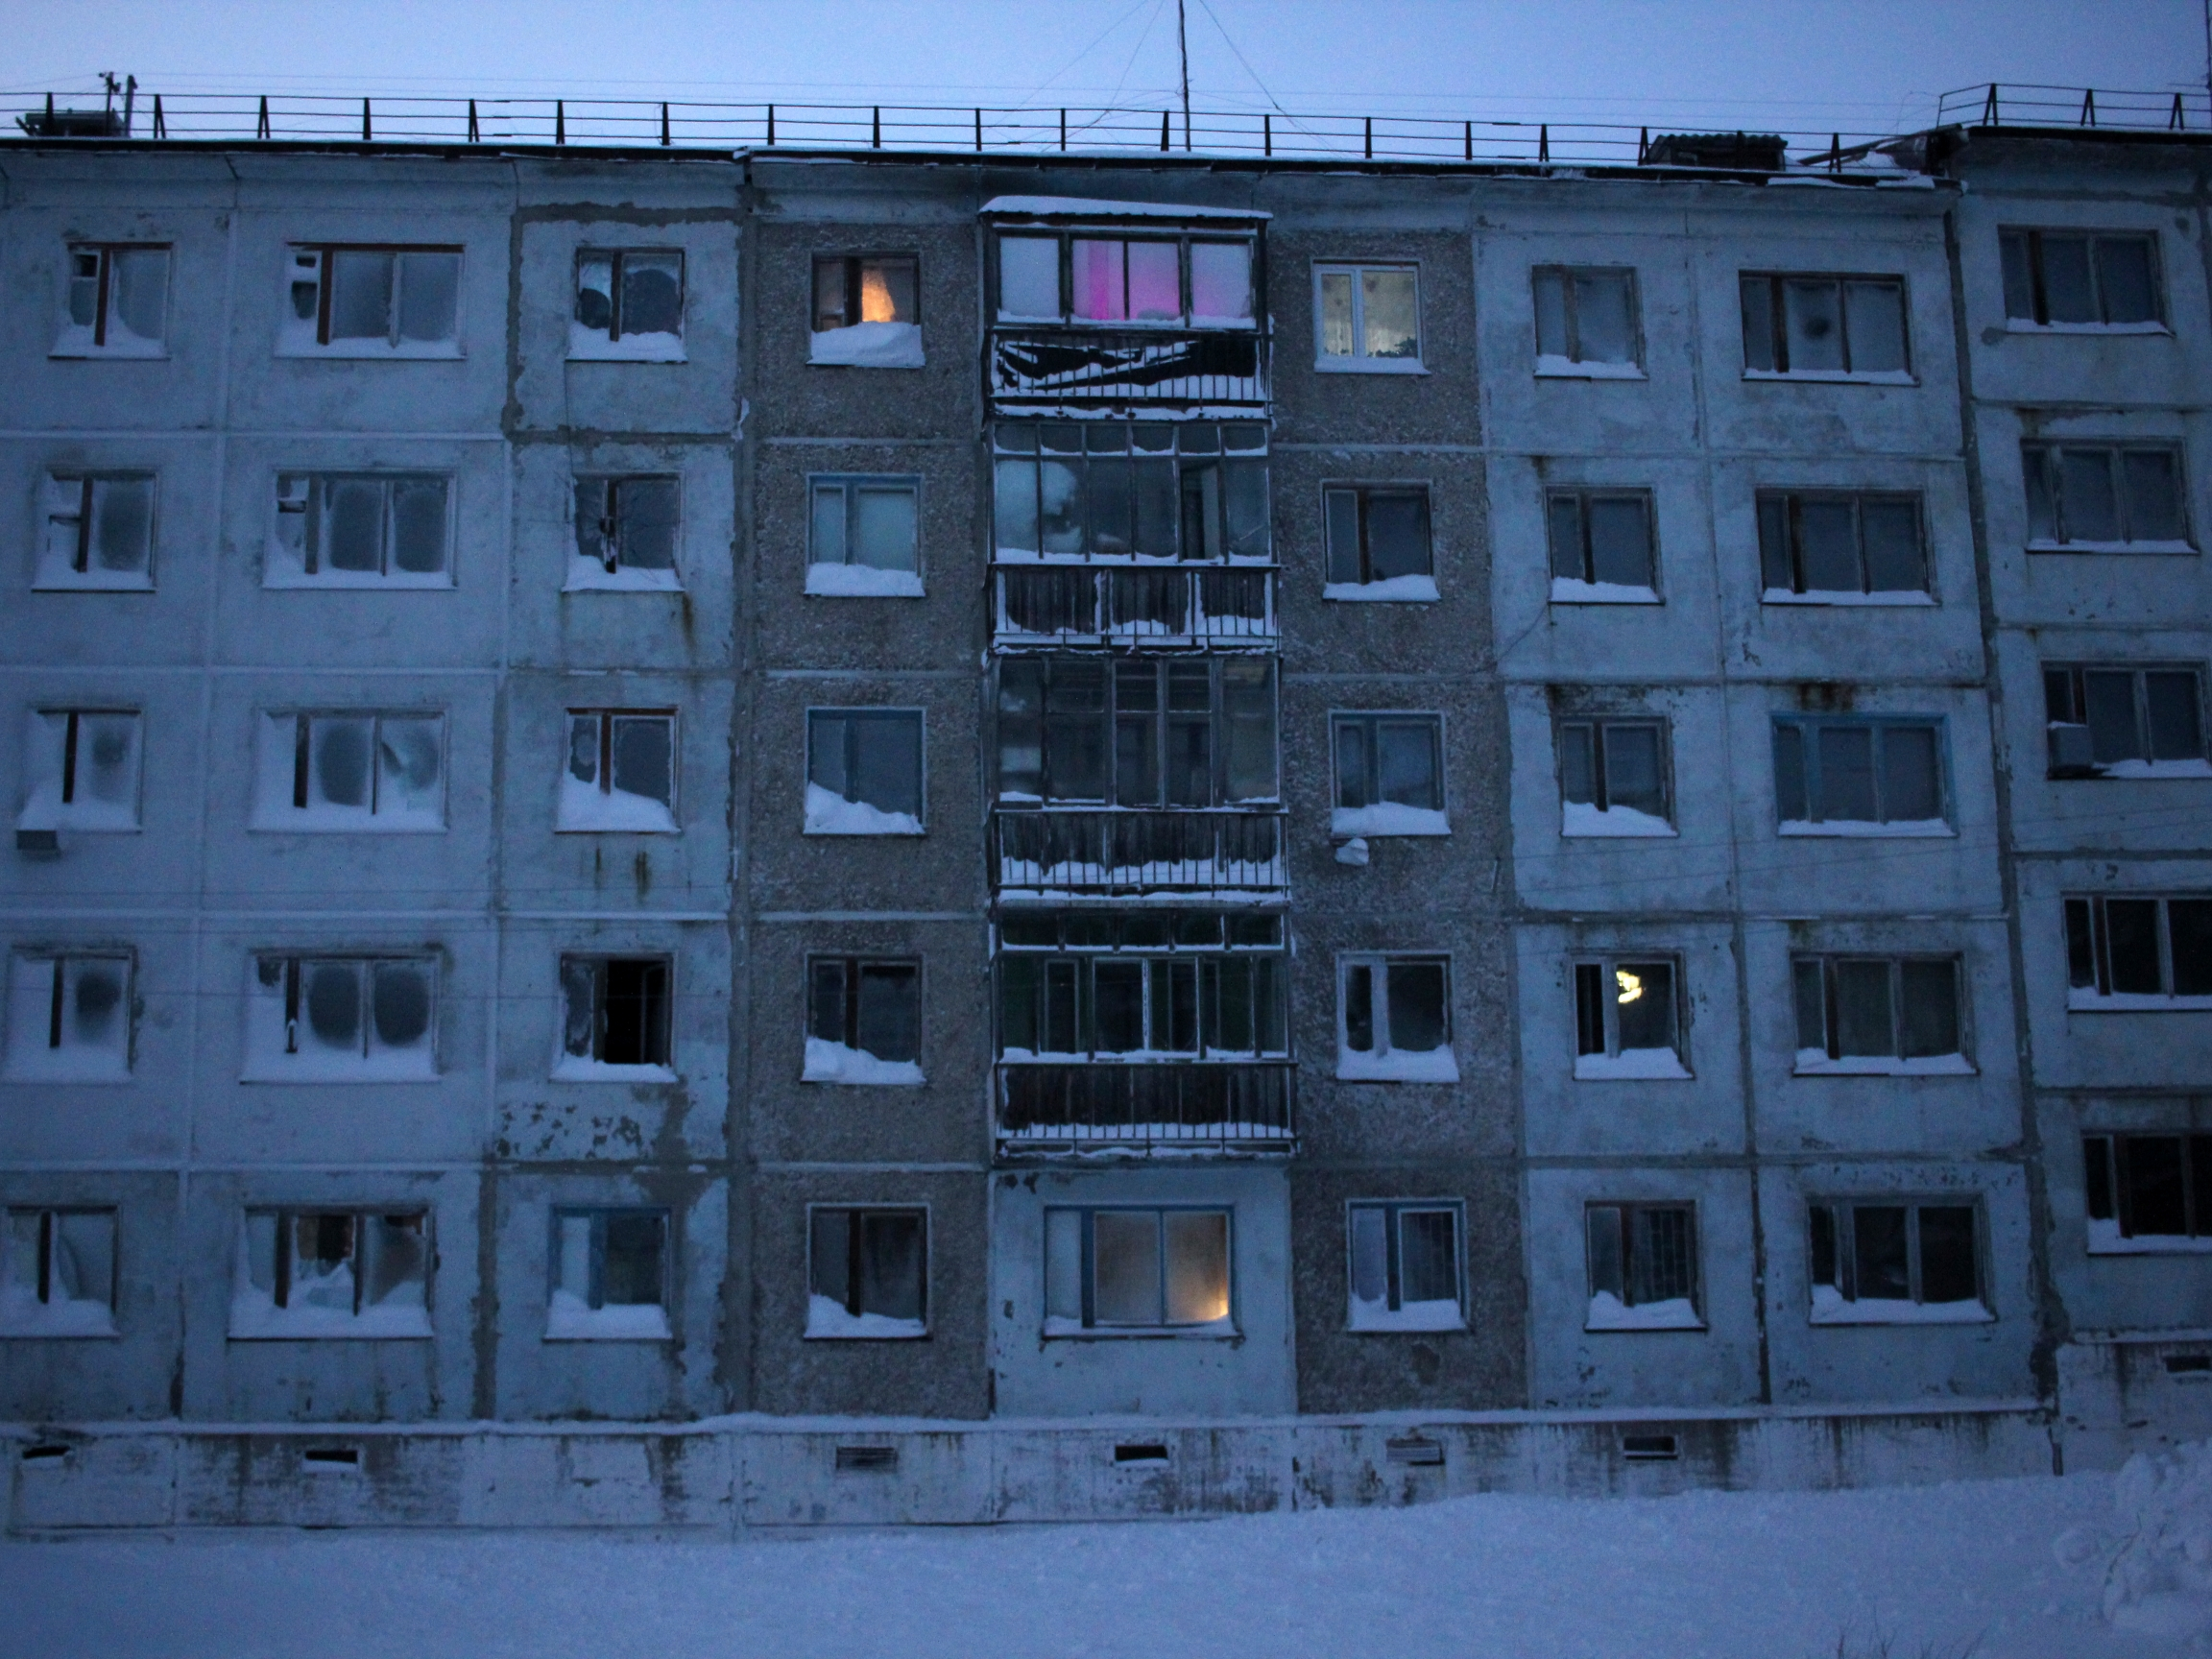 A block of Soviet-style apartments